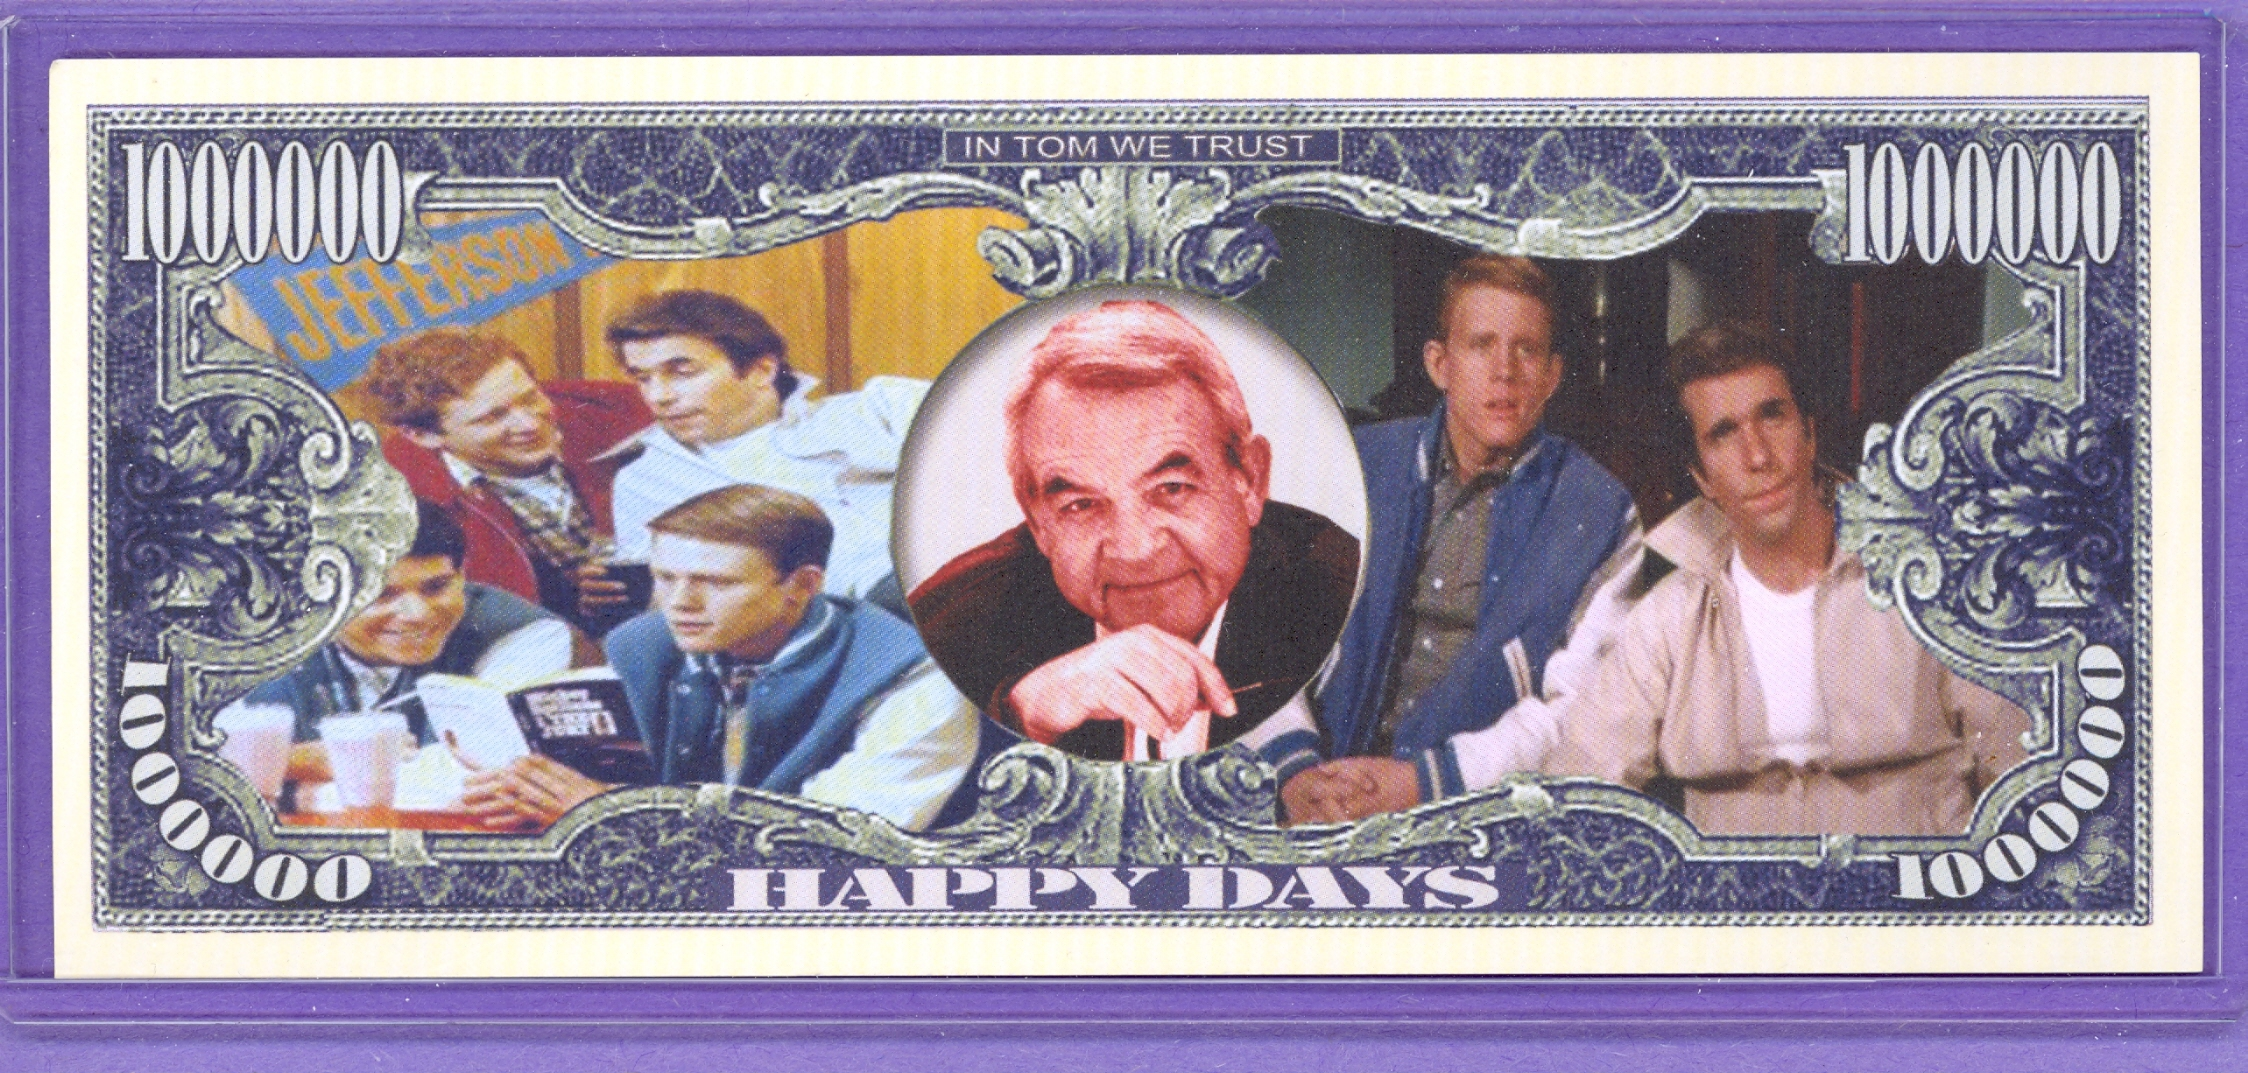 In Memory of Tom Bosley $1,000,000 Fantasy Note